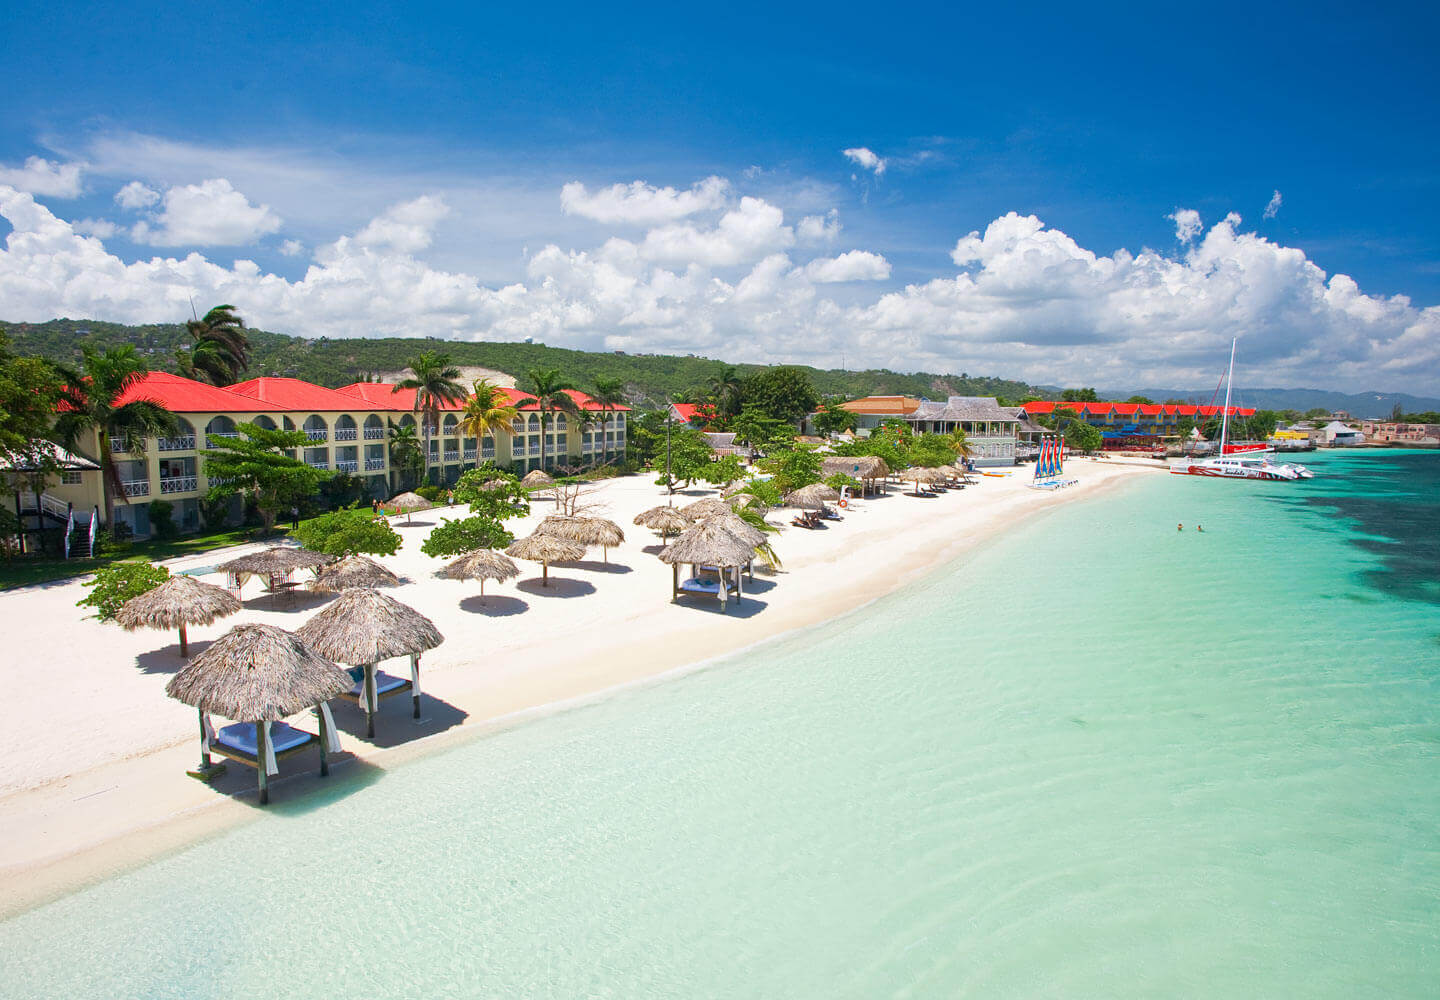 Sandals Montego Bay - Adults Only Vacations